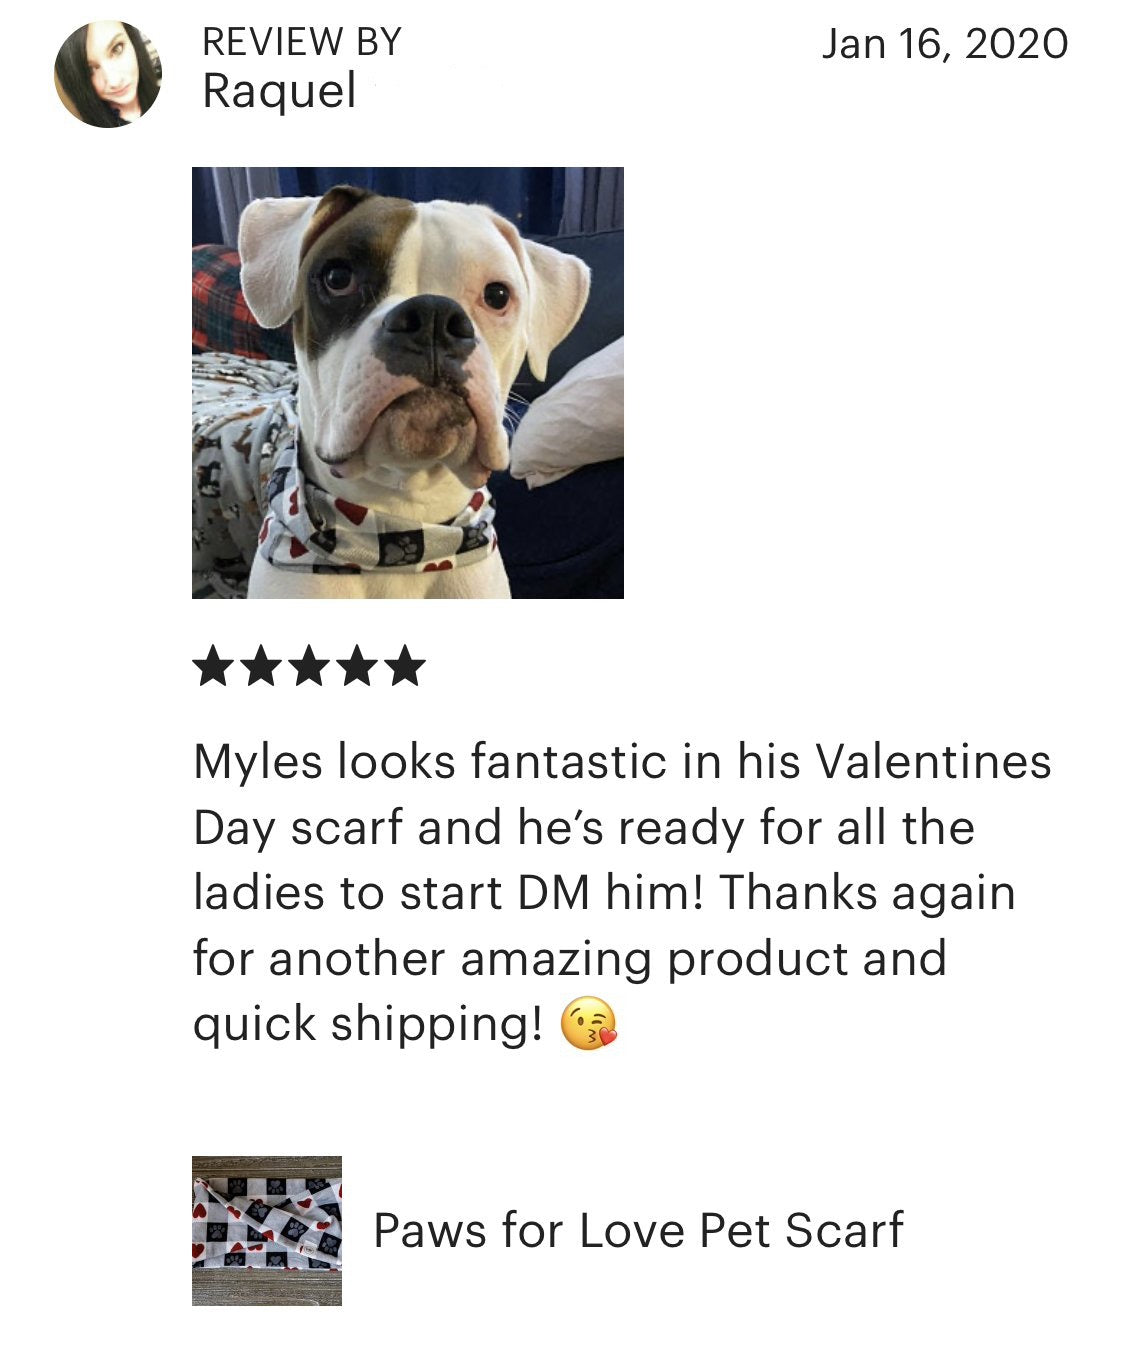 Paws for Love Pet Scarf